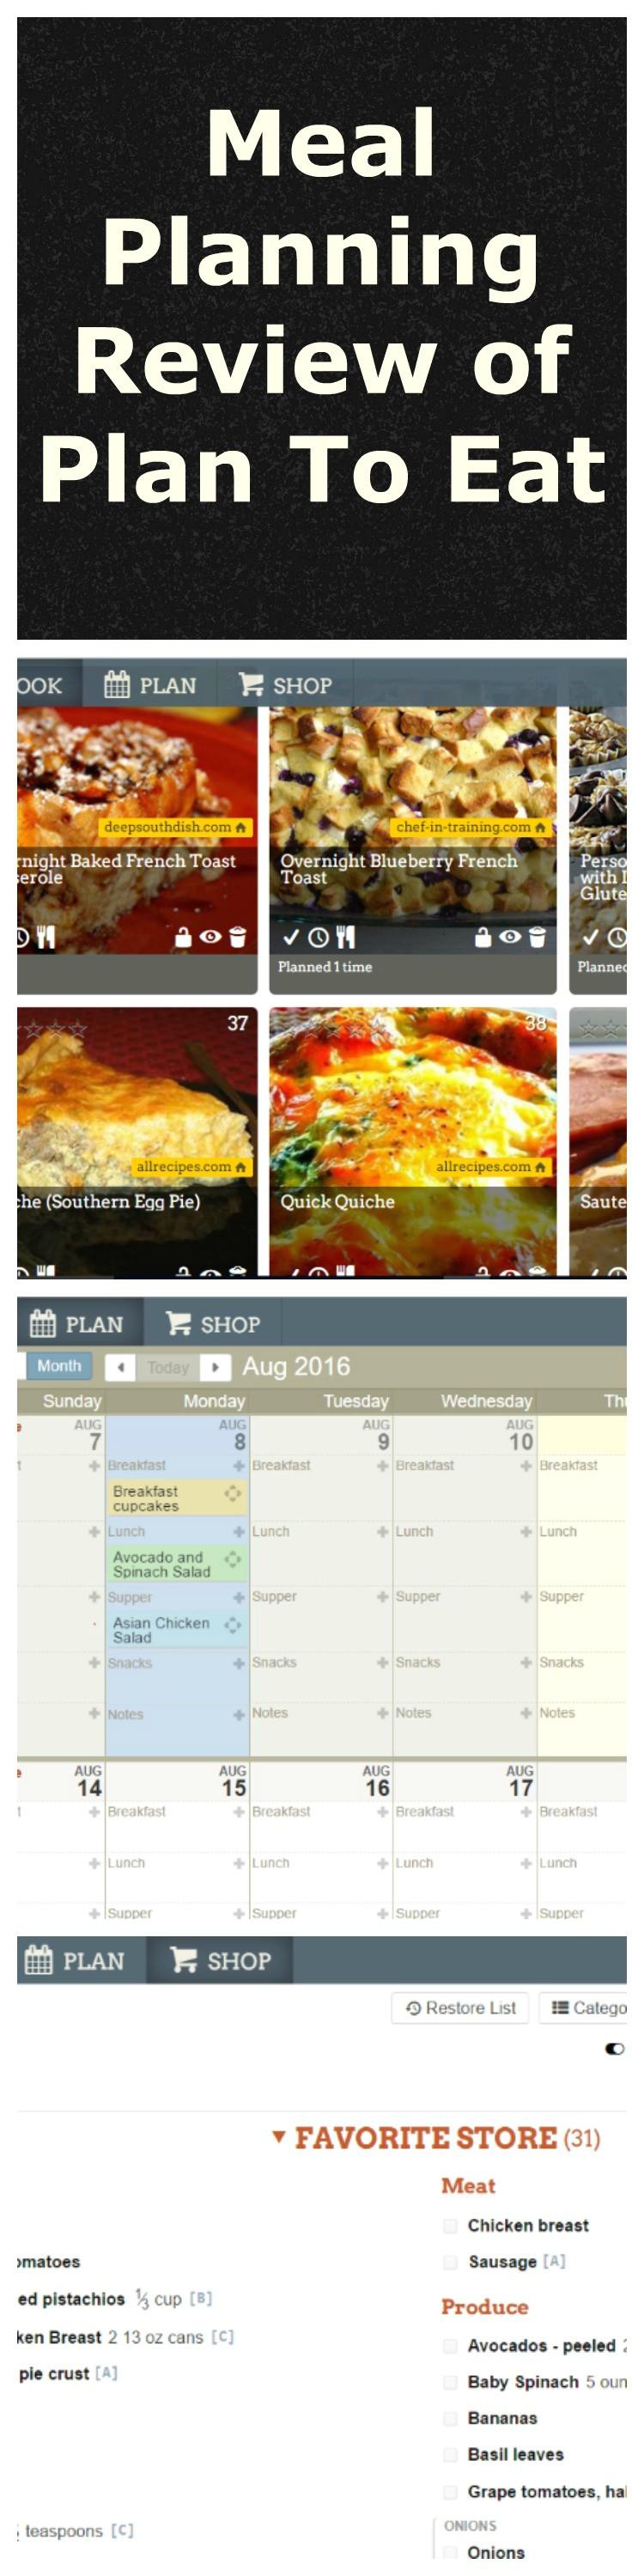 meal planning app review plan eat